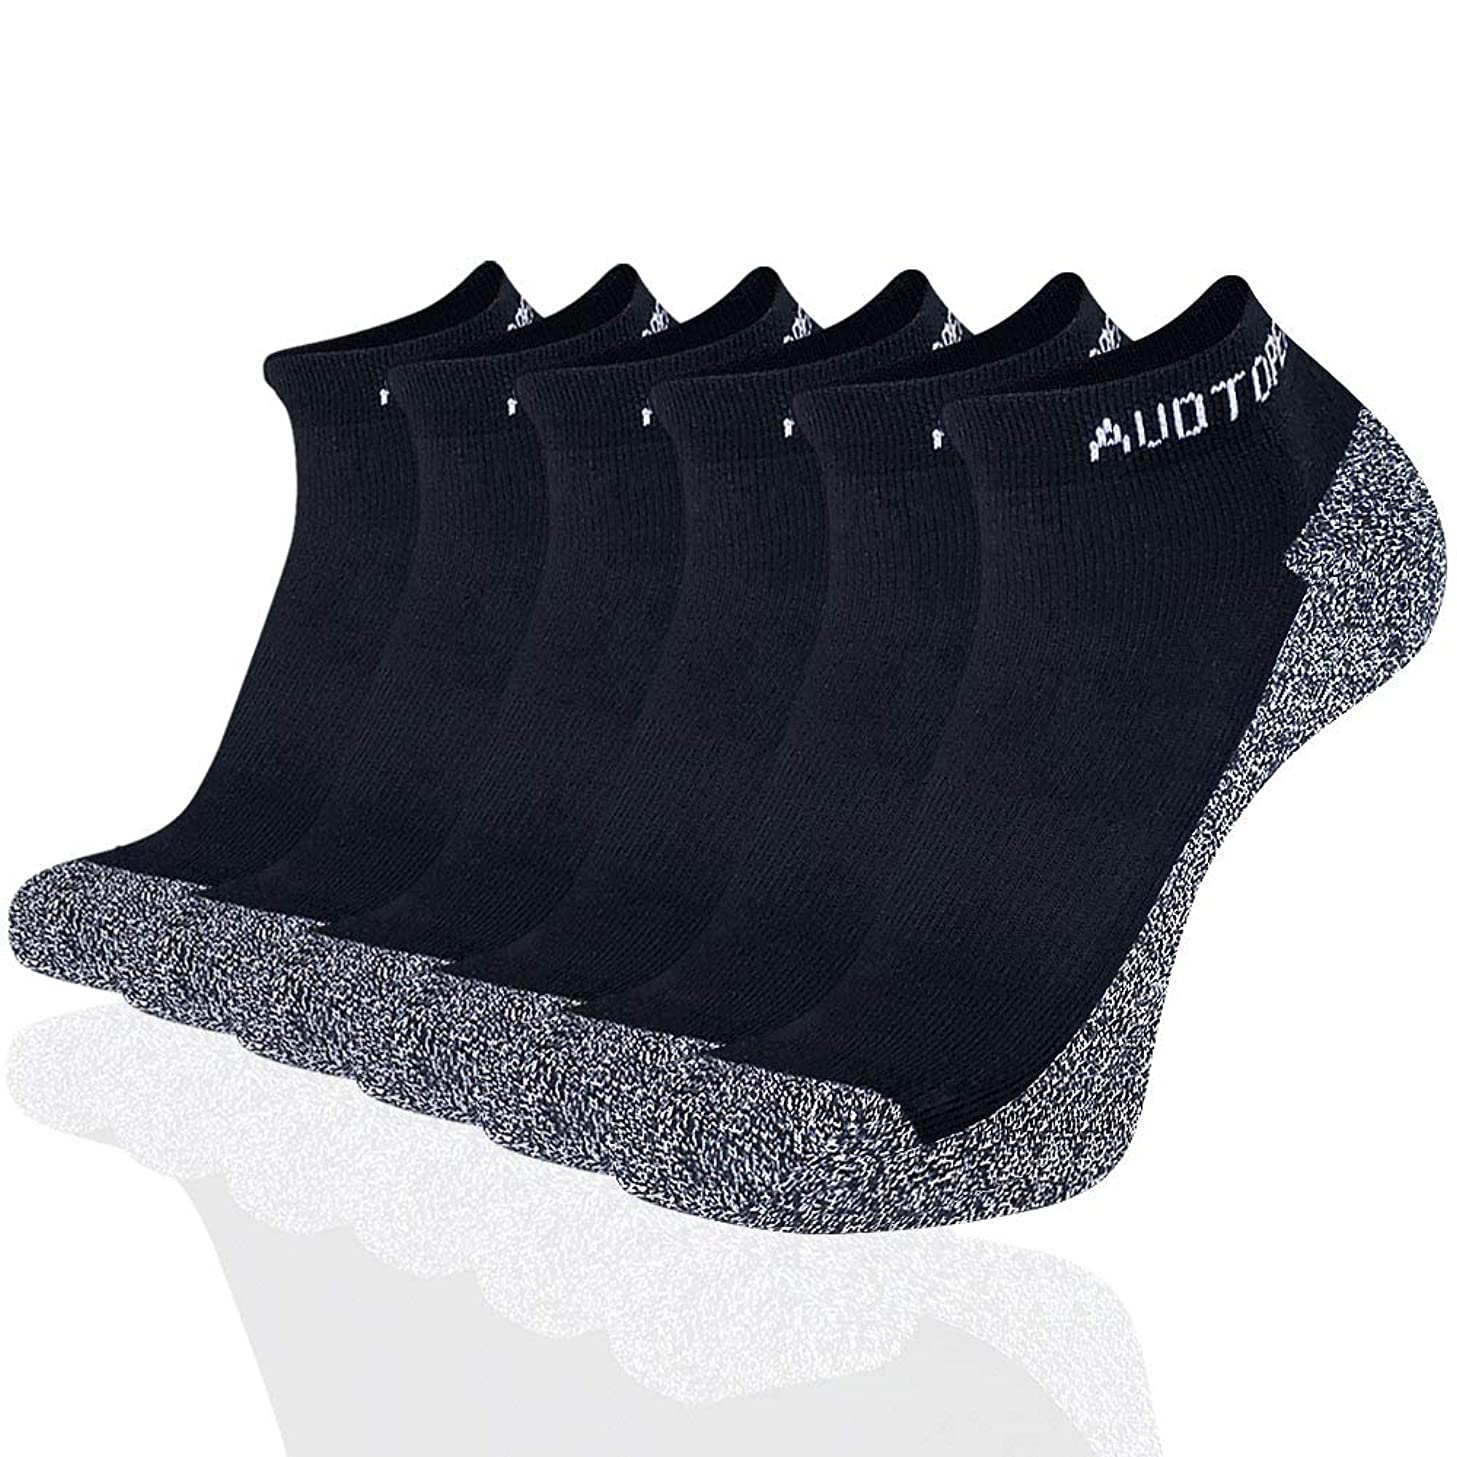 Men's Athletic Cushion Low Cut Ankle Socks for Running, Training, and Hiking (6 Pack)